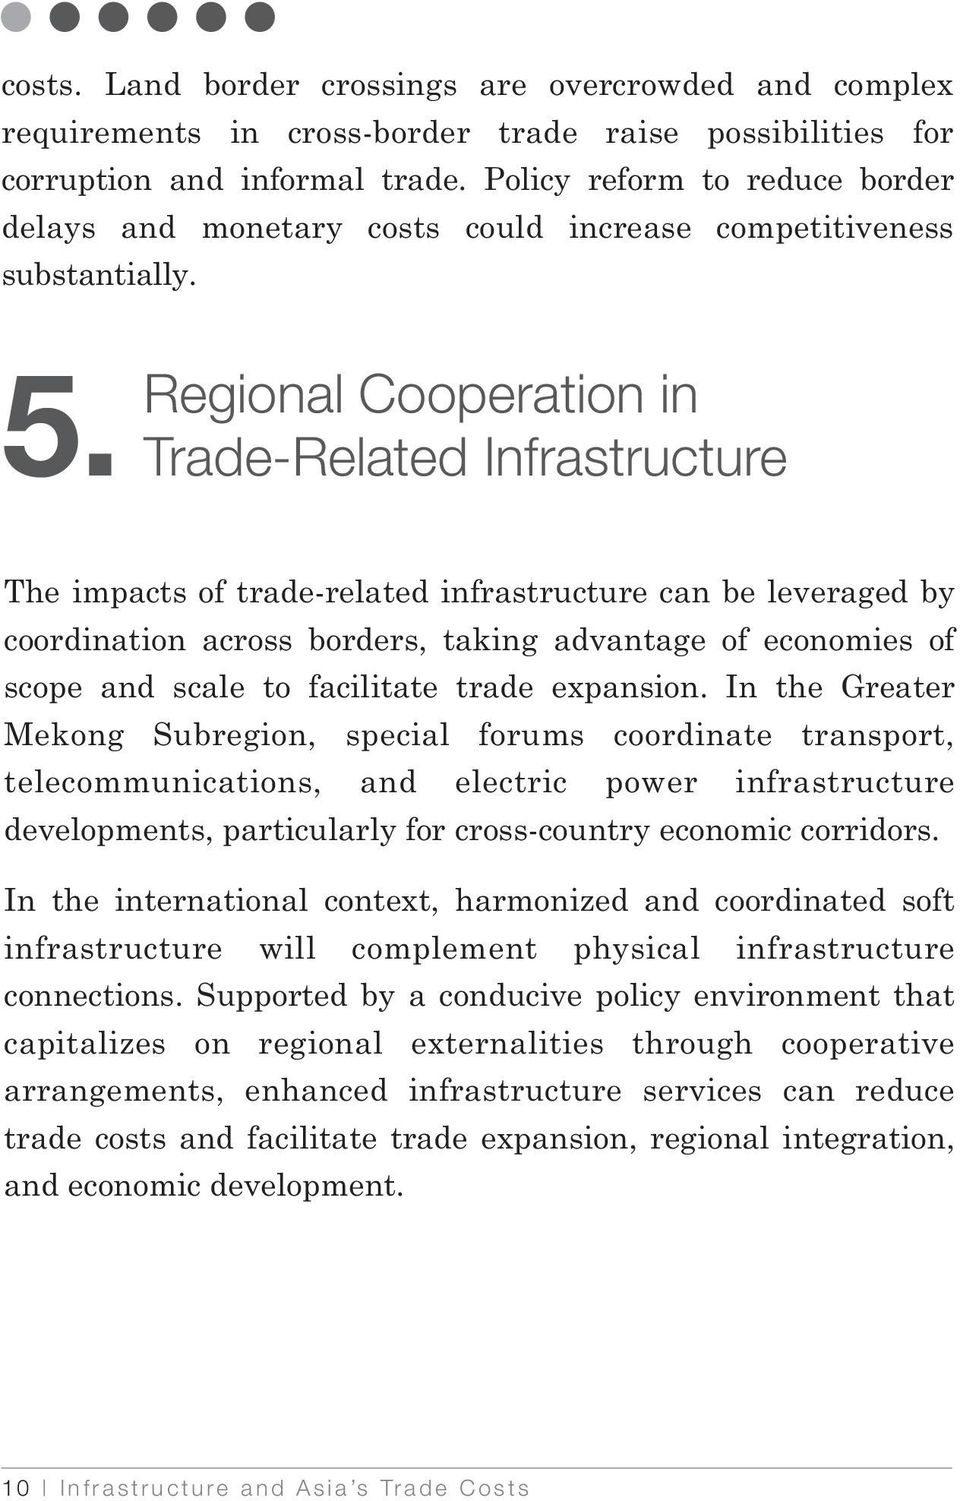 Regional Cooperation in Trade-Related Infrastructure The impacts of trade-related infrastructure can be leveraged by coordination across borders, taking advantage of economies of scope and scale to